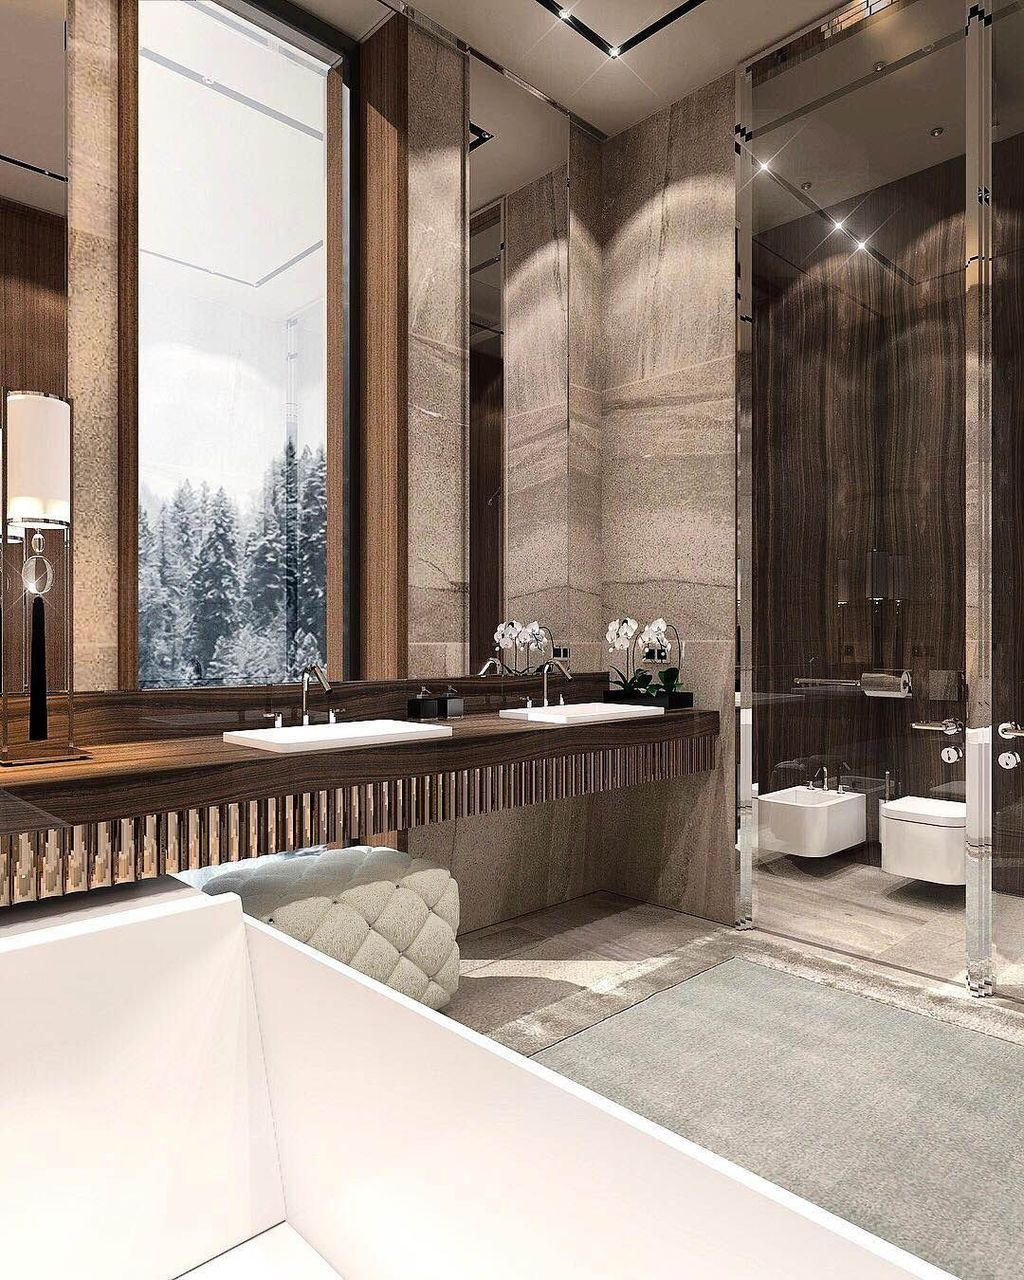 Luxury Bathroom Design And Decor Ideas 33